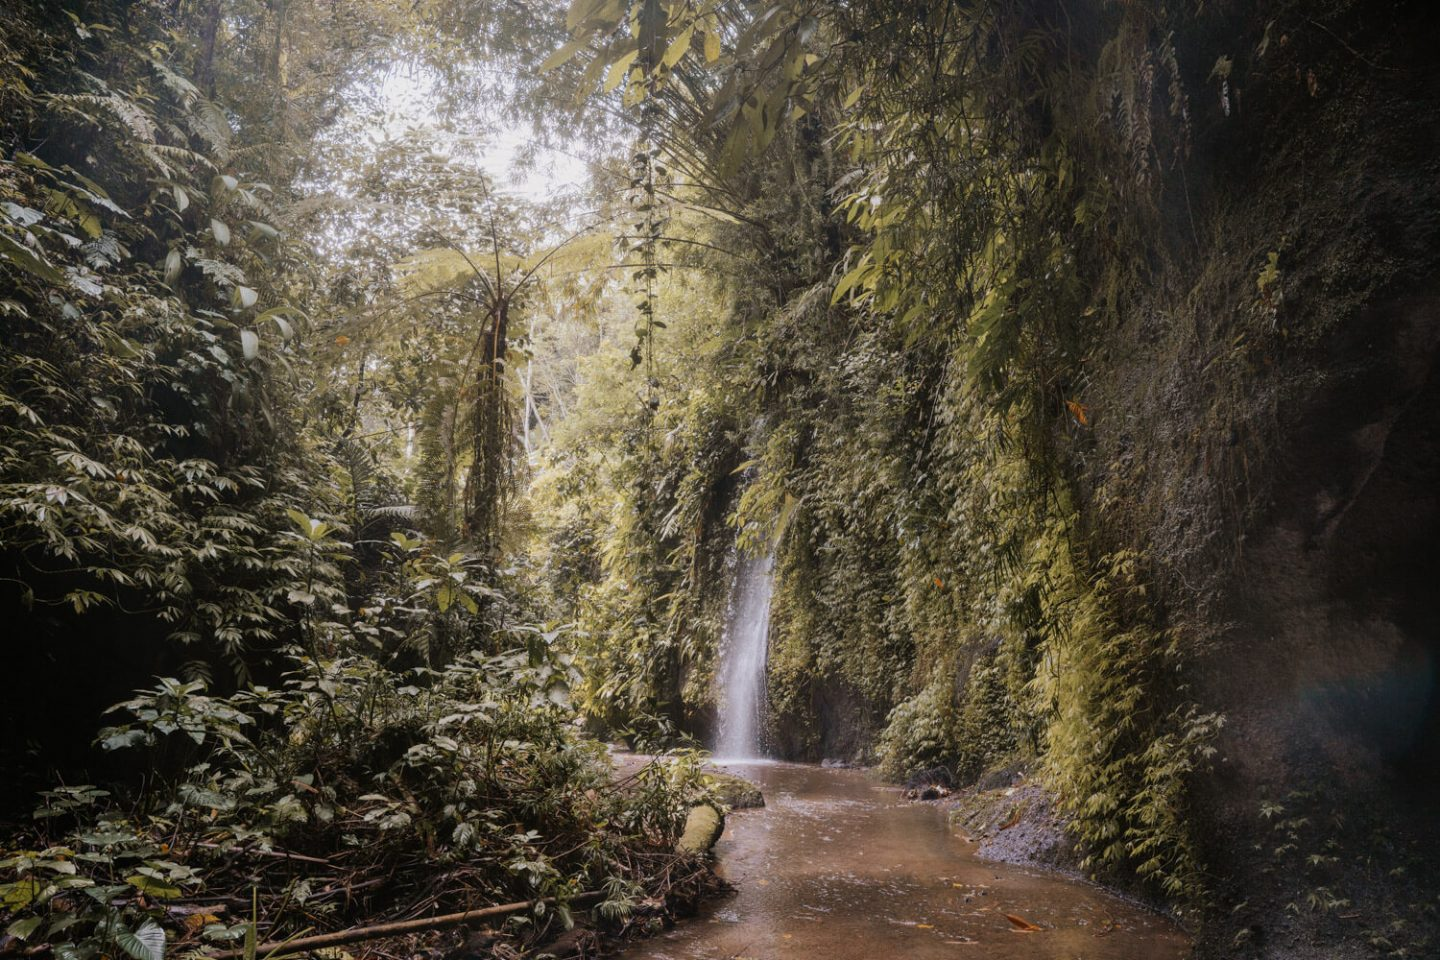 Other side of Tukad Cepung Waterfall